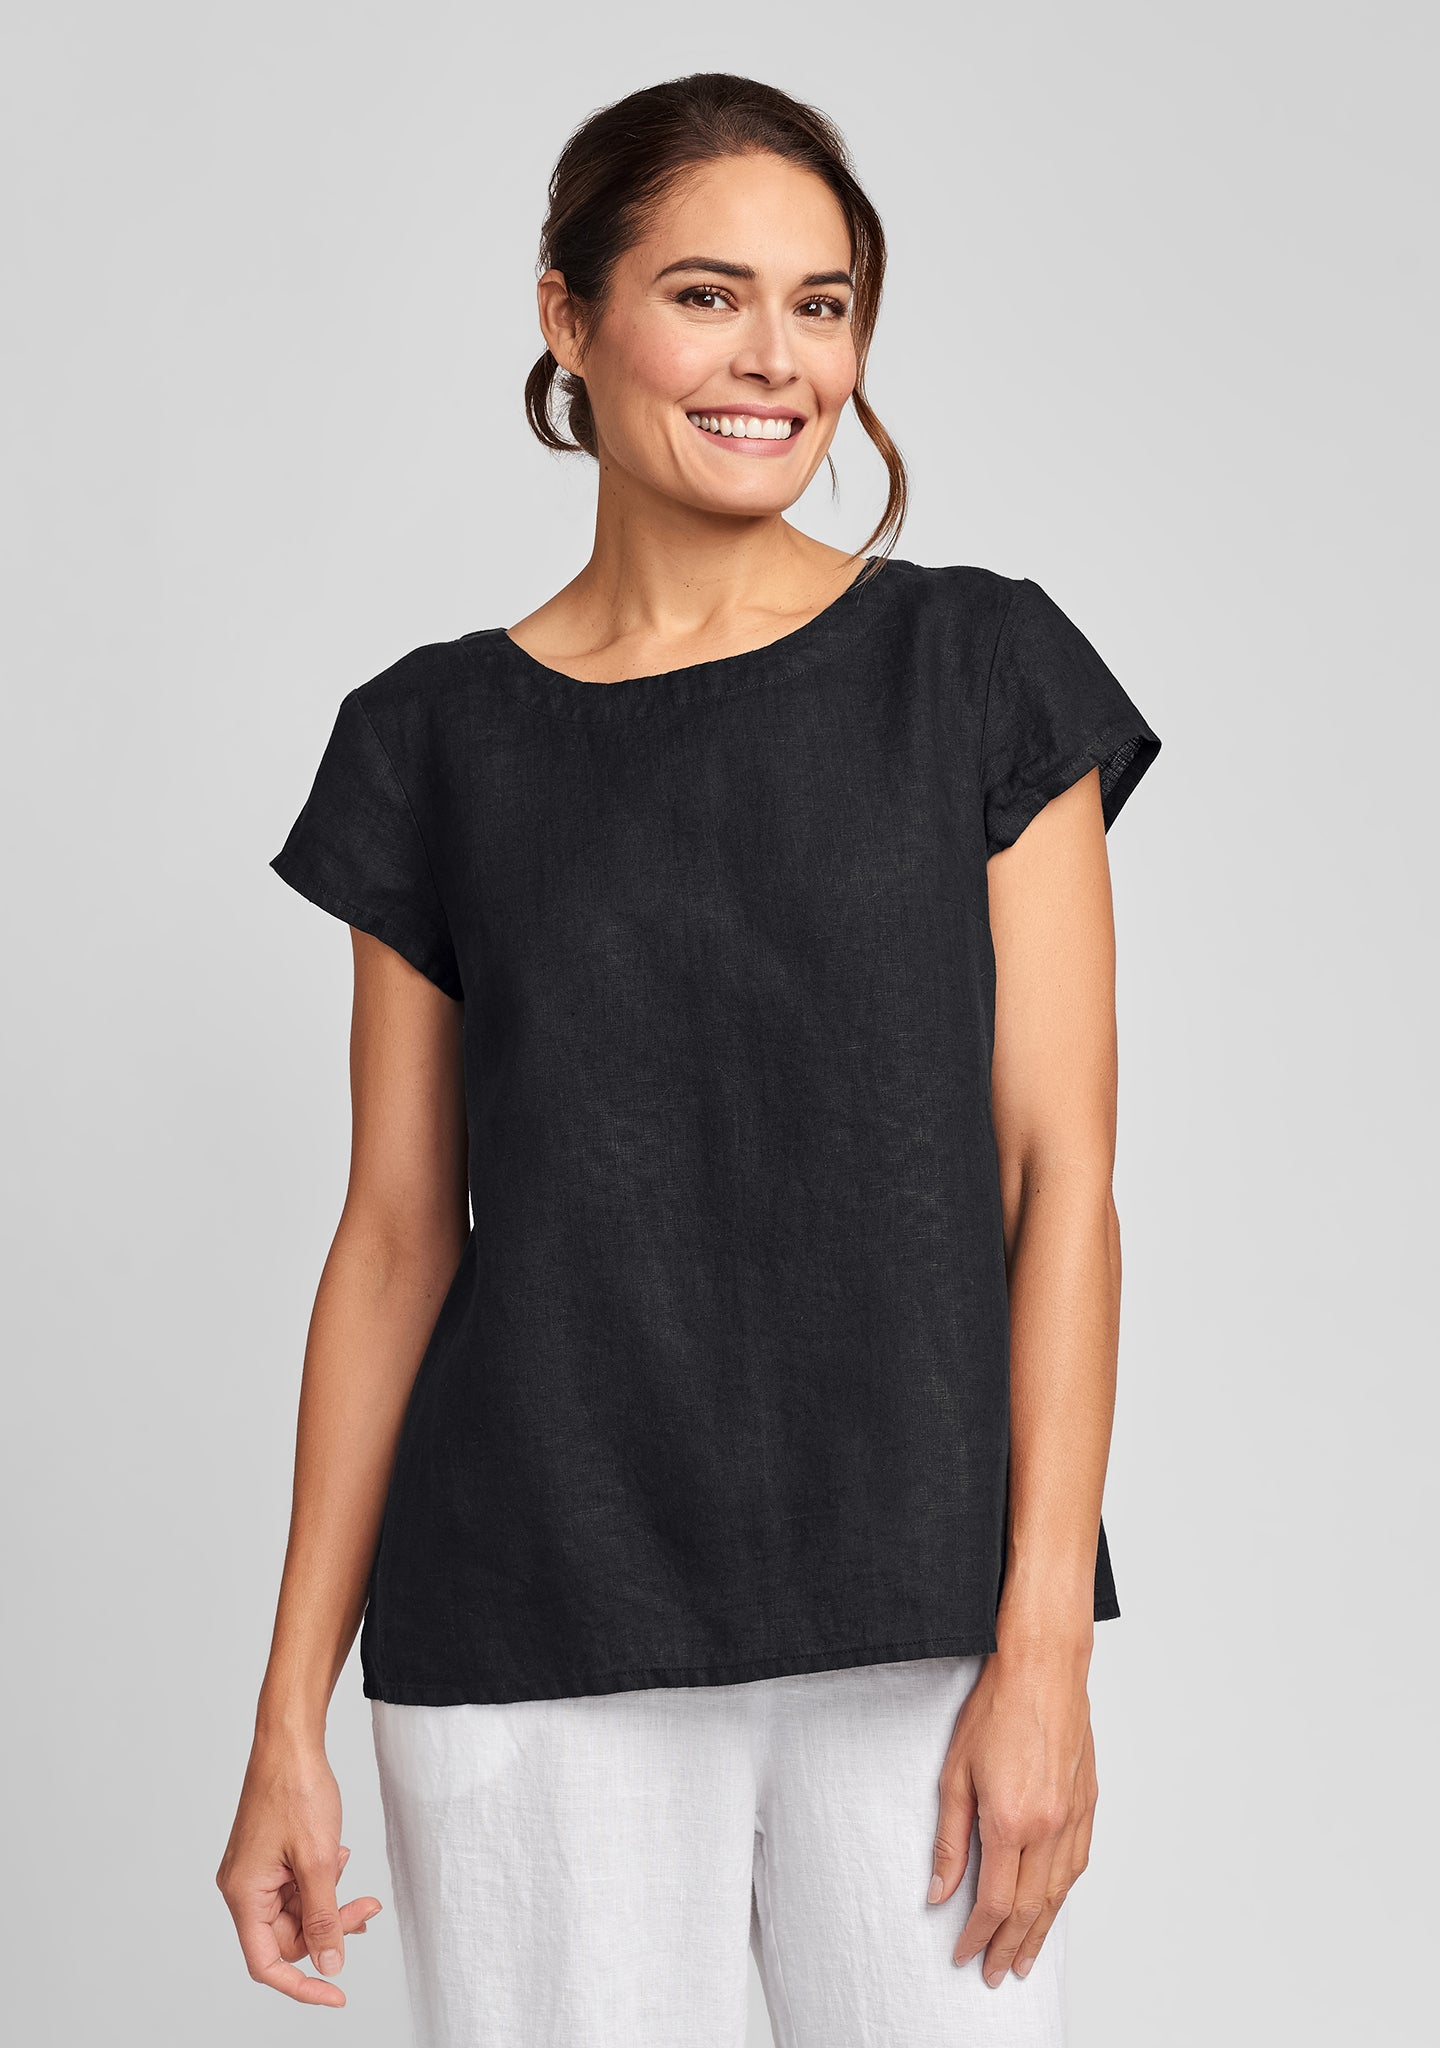 tuck back tee linen t shirt black